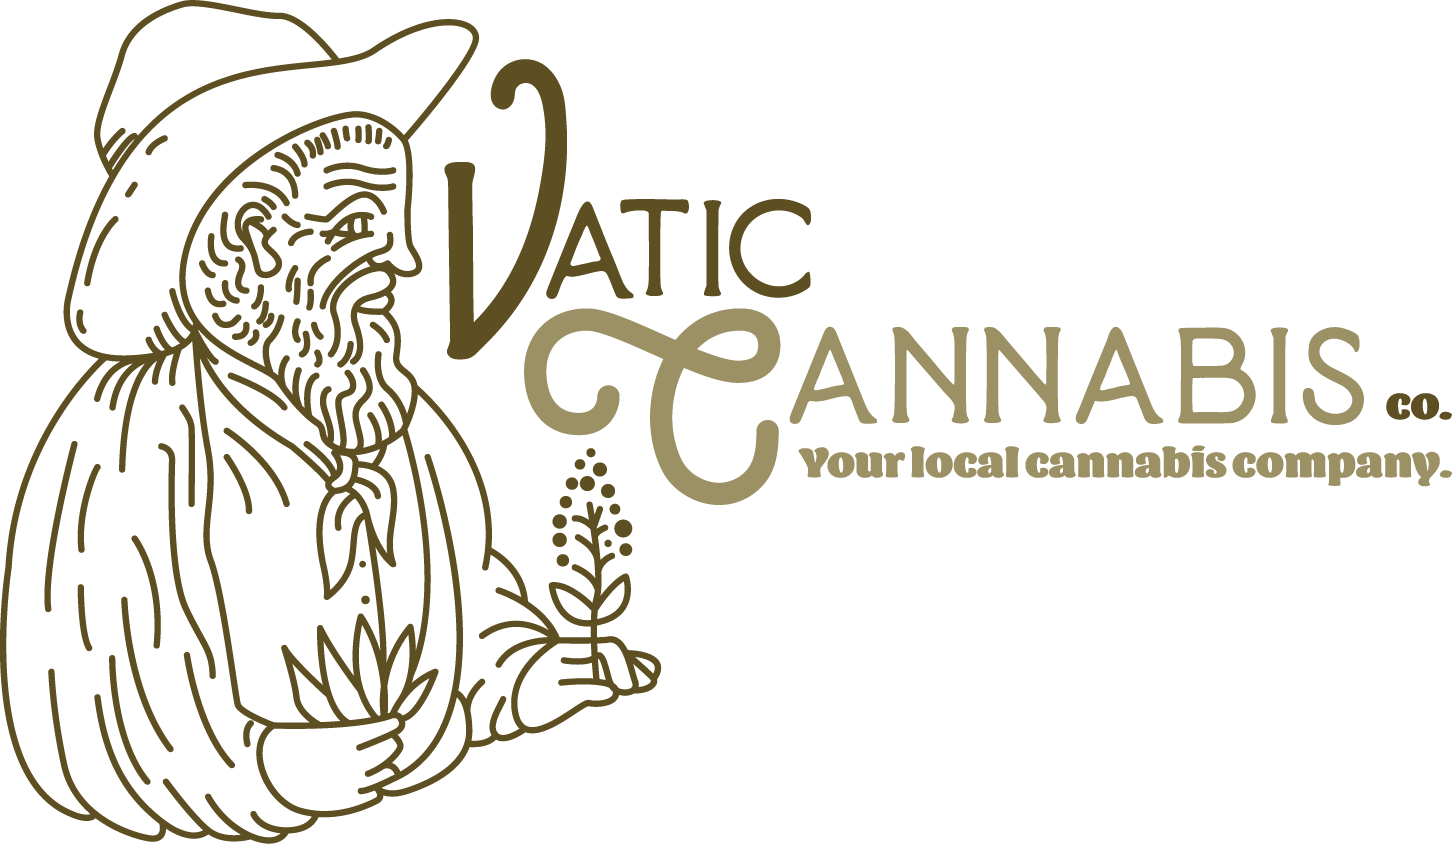 Vatic Cannabis Co.